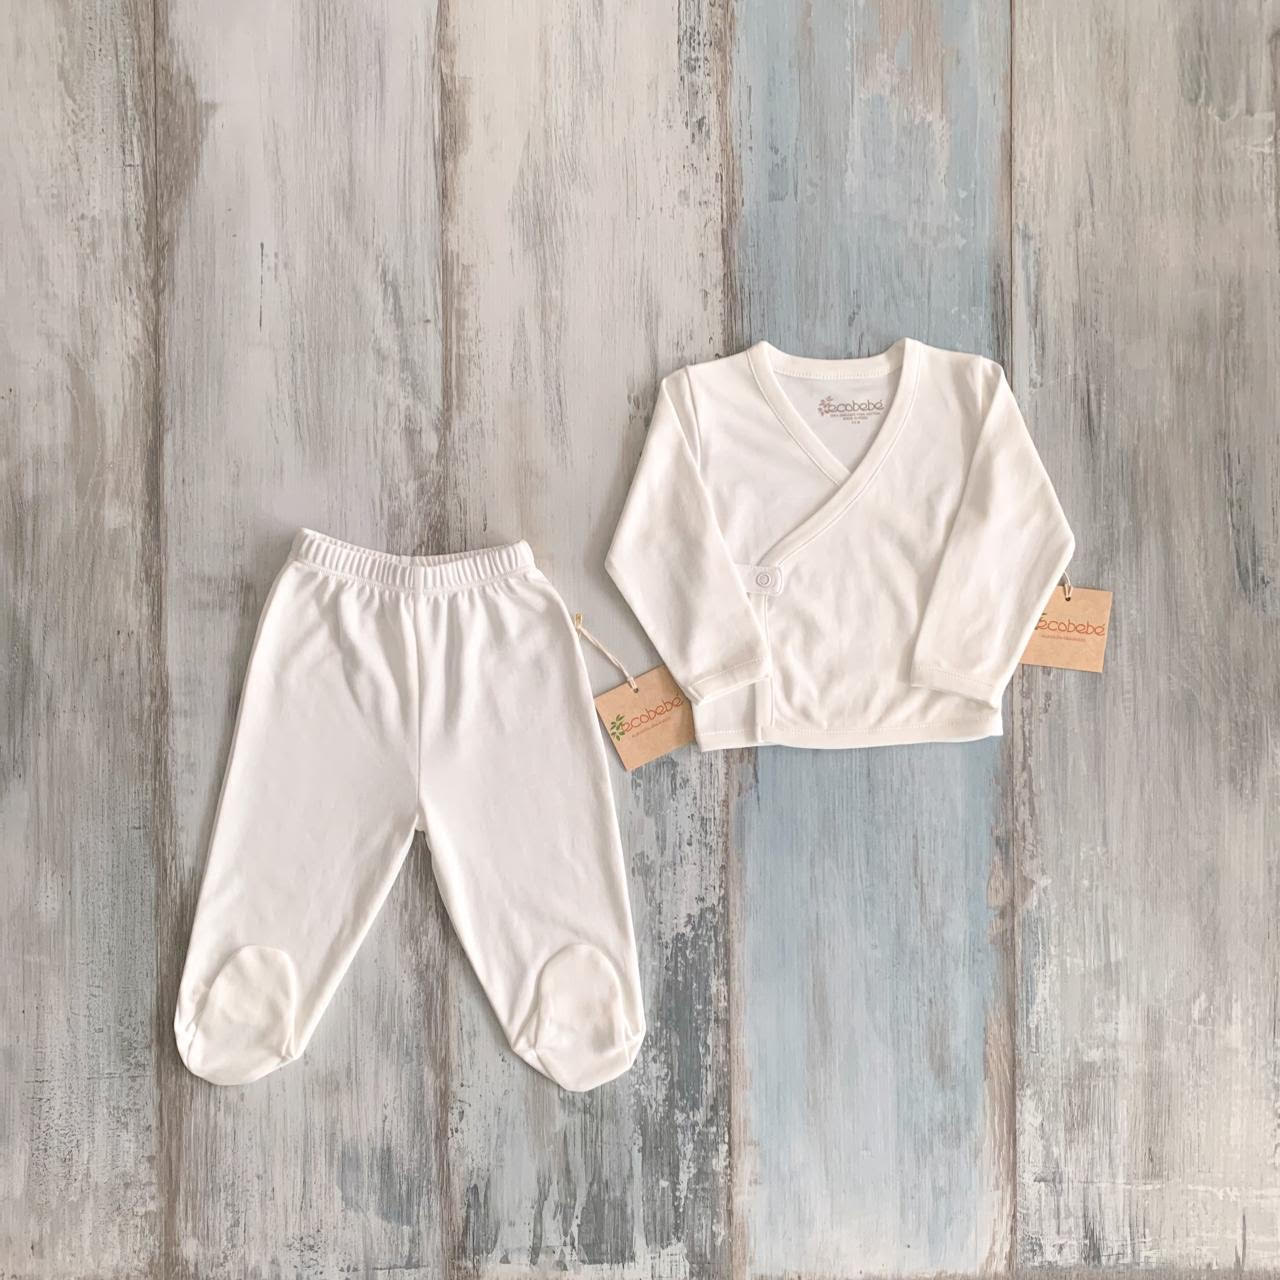 Meet Pan American Apparel: Stylish and Sustainable Kids Clothing | Nashville Baby Guide